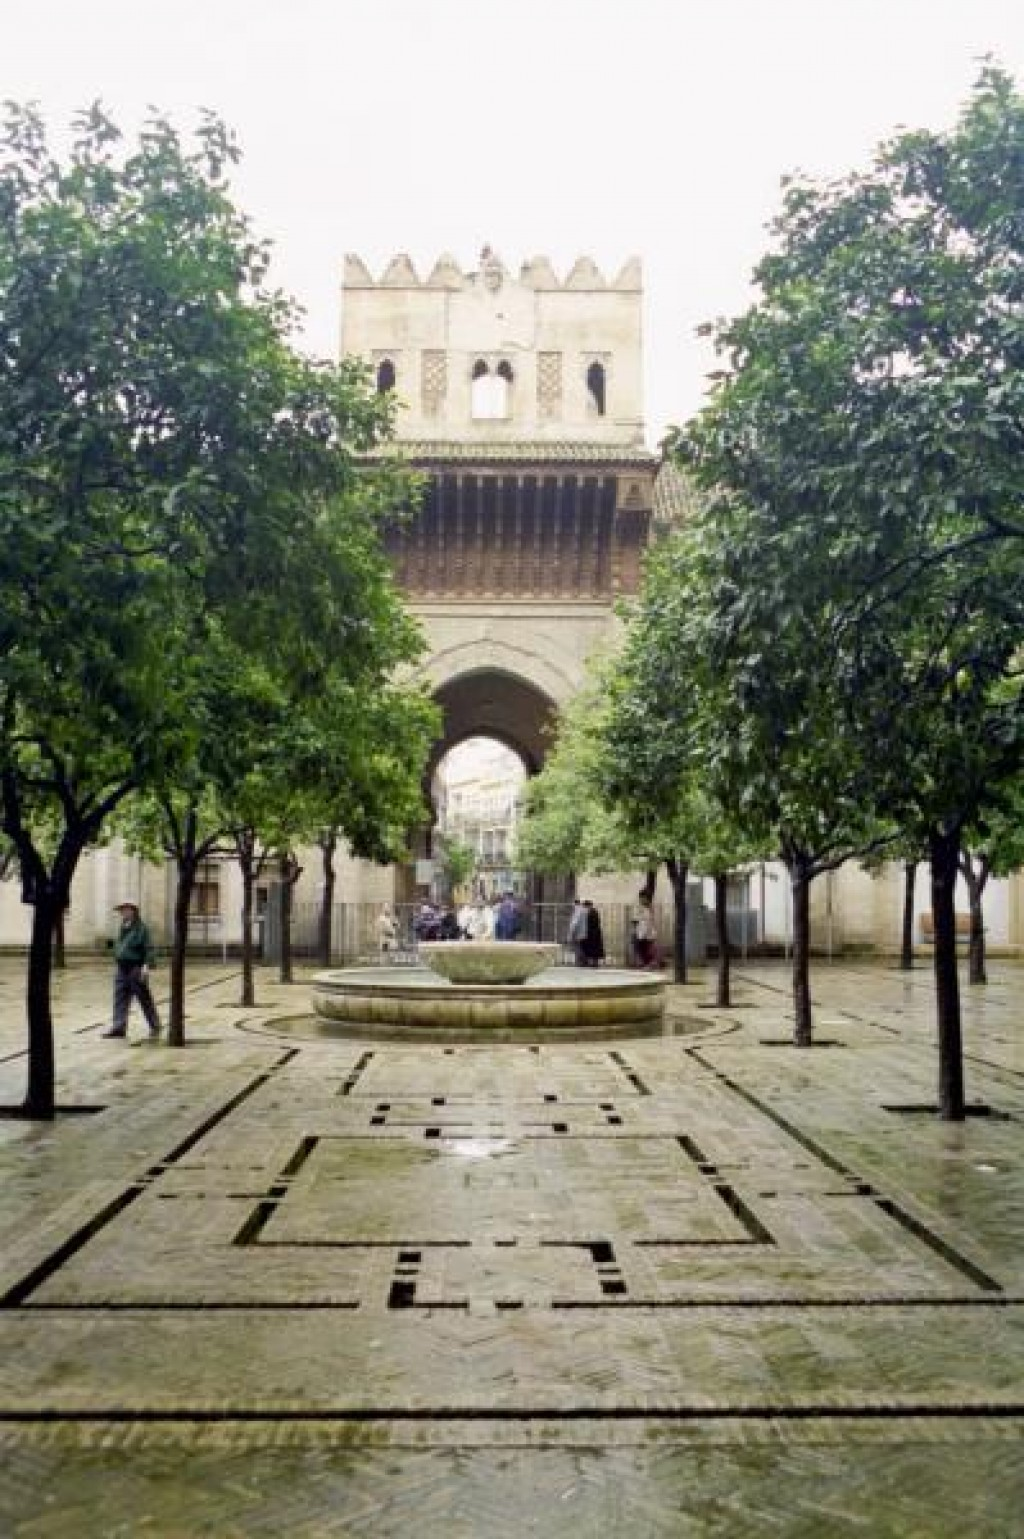 This is the garden outside the cathedral.  The garden, along with the minaret, is all that remains of the mosque that once stood on this spot.  It was used for washing before prayer.